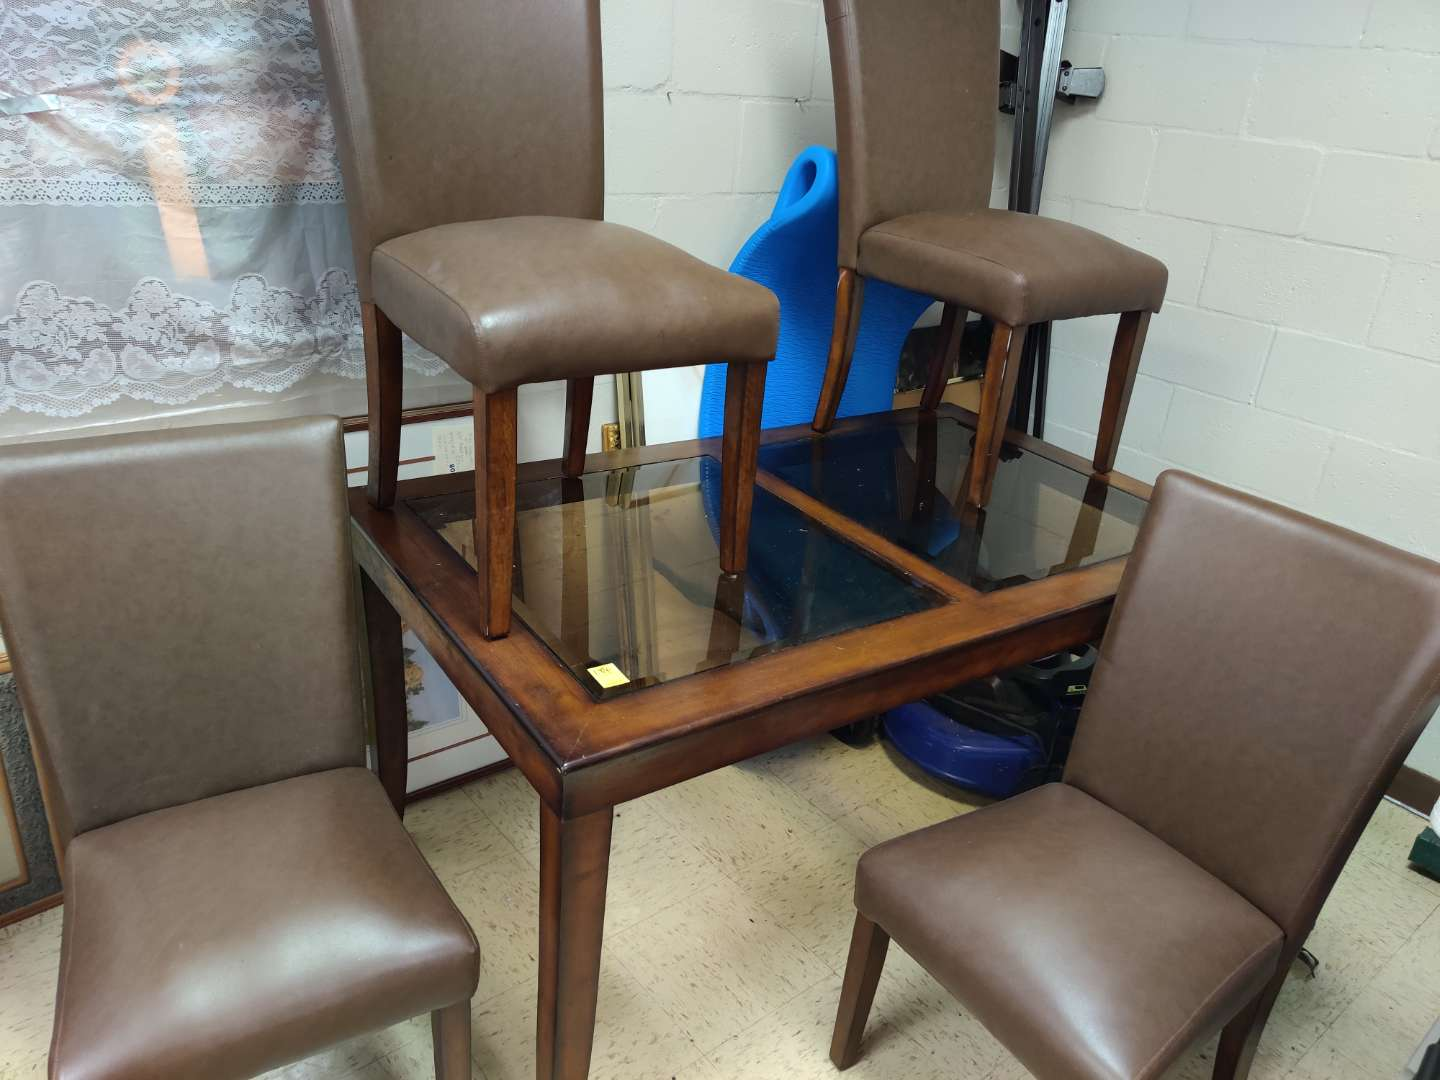 # 184 table and four chairs smoked beveled glass 6 ft long 3 ft wide PVC brown leather chairs